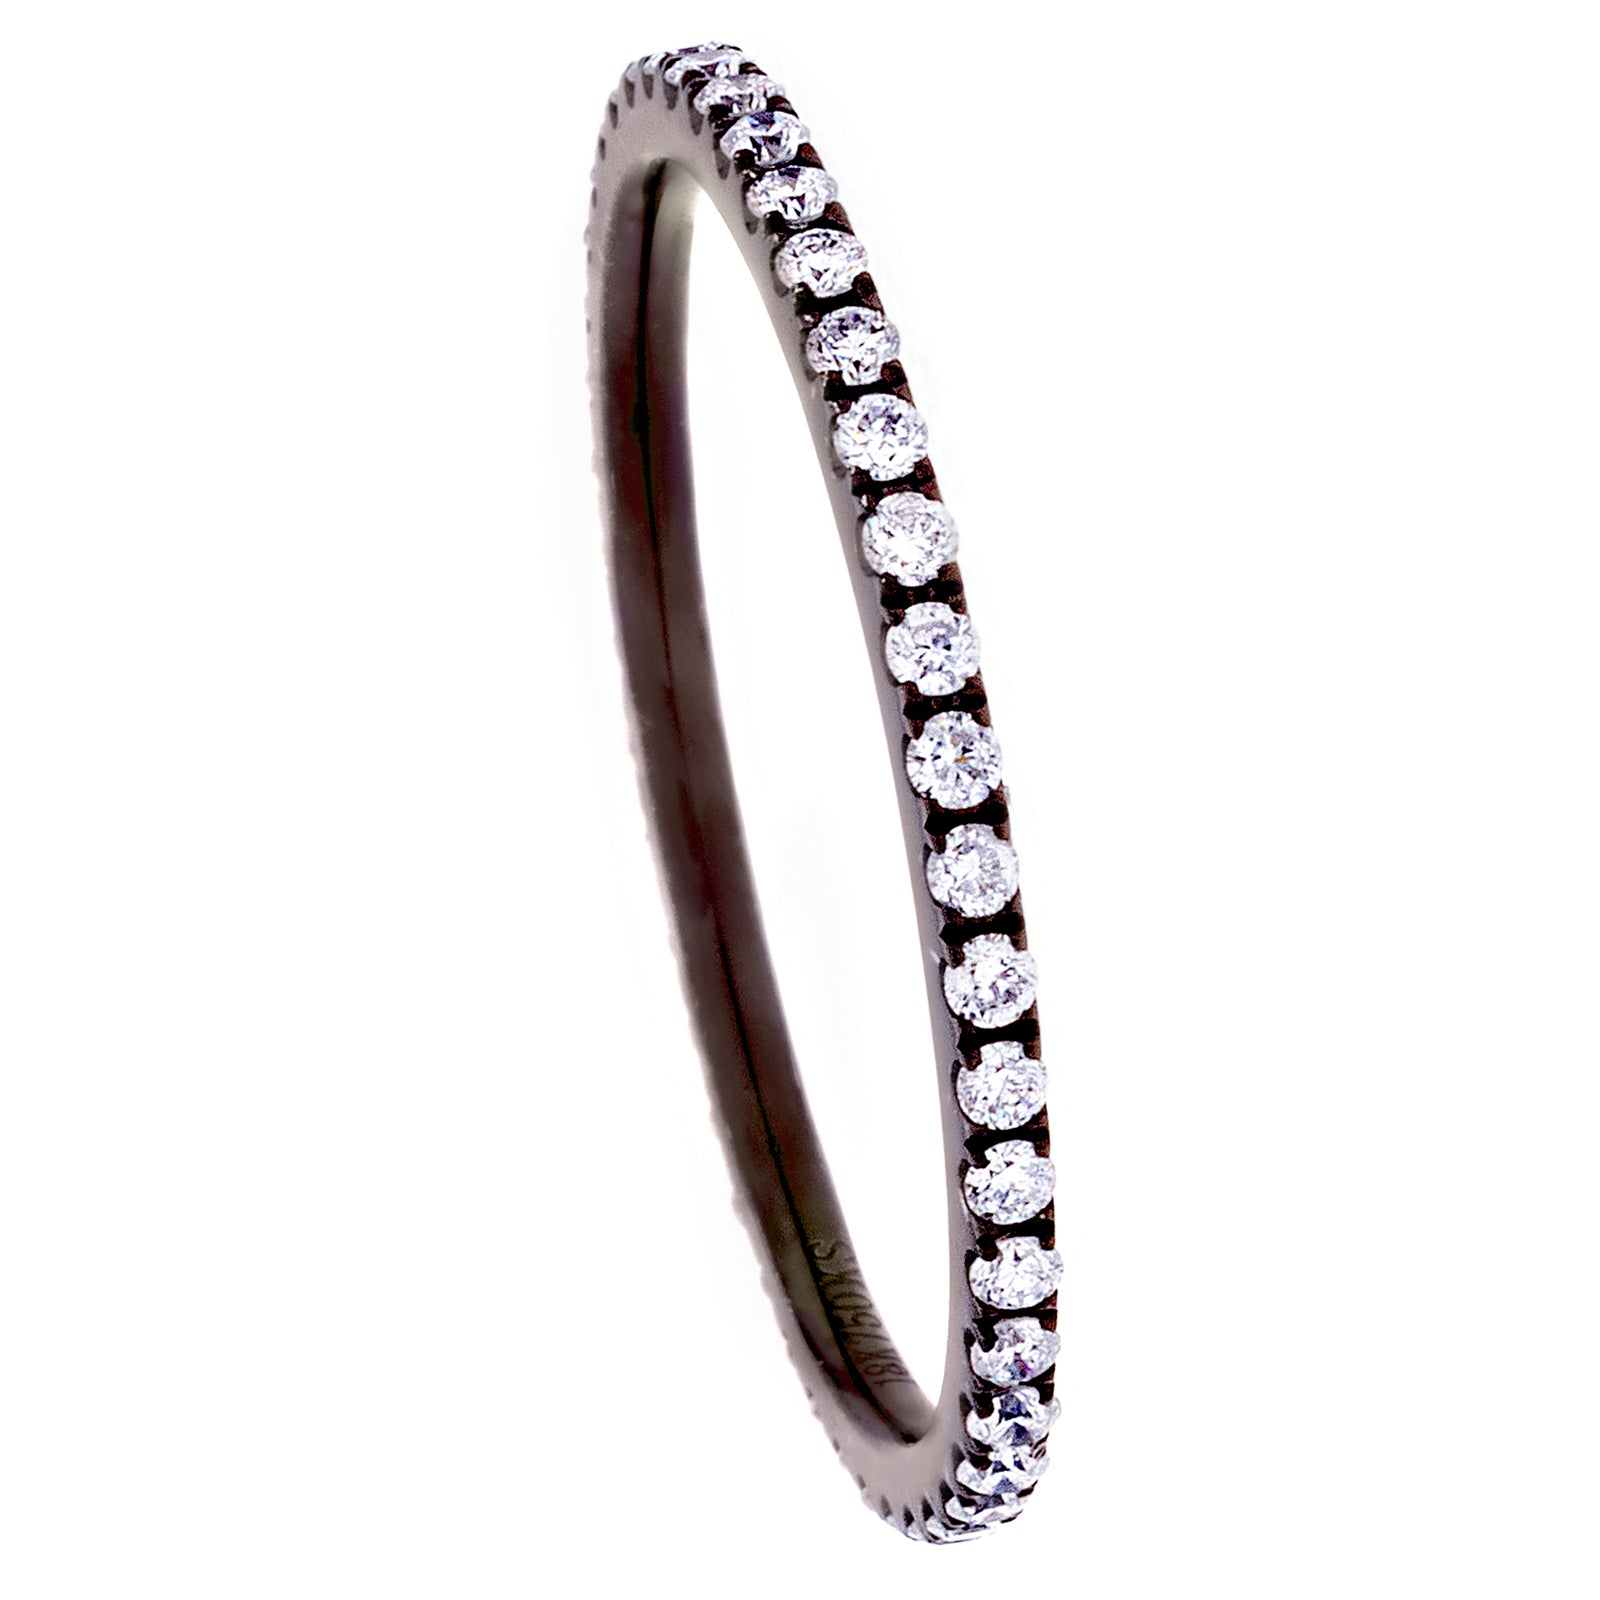 Diamonds & 18K Blackened White Gold Single Band Ring - SOLD